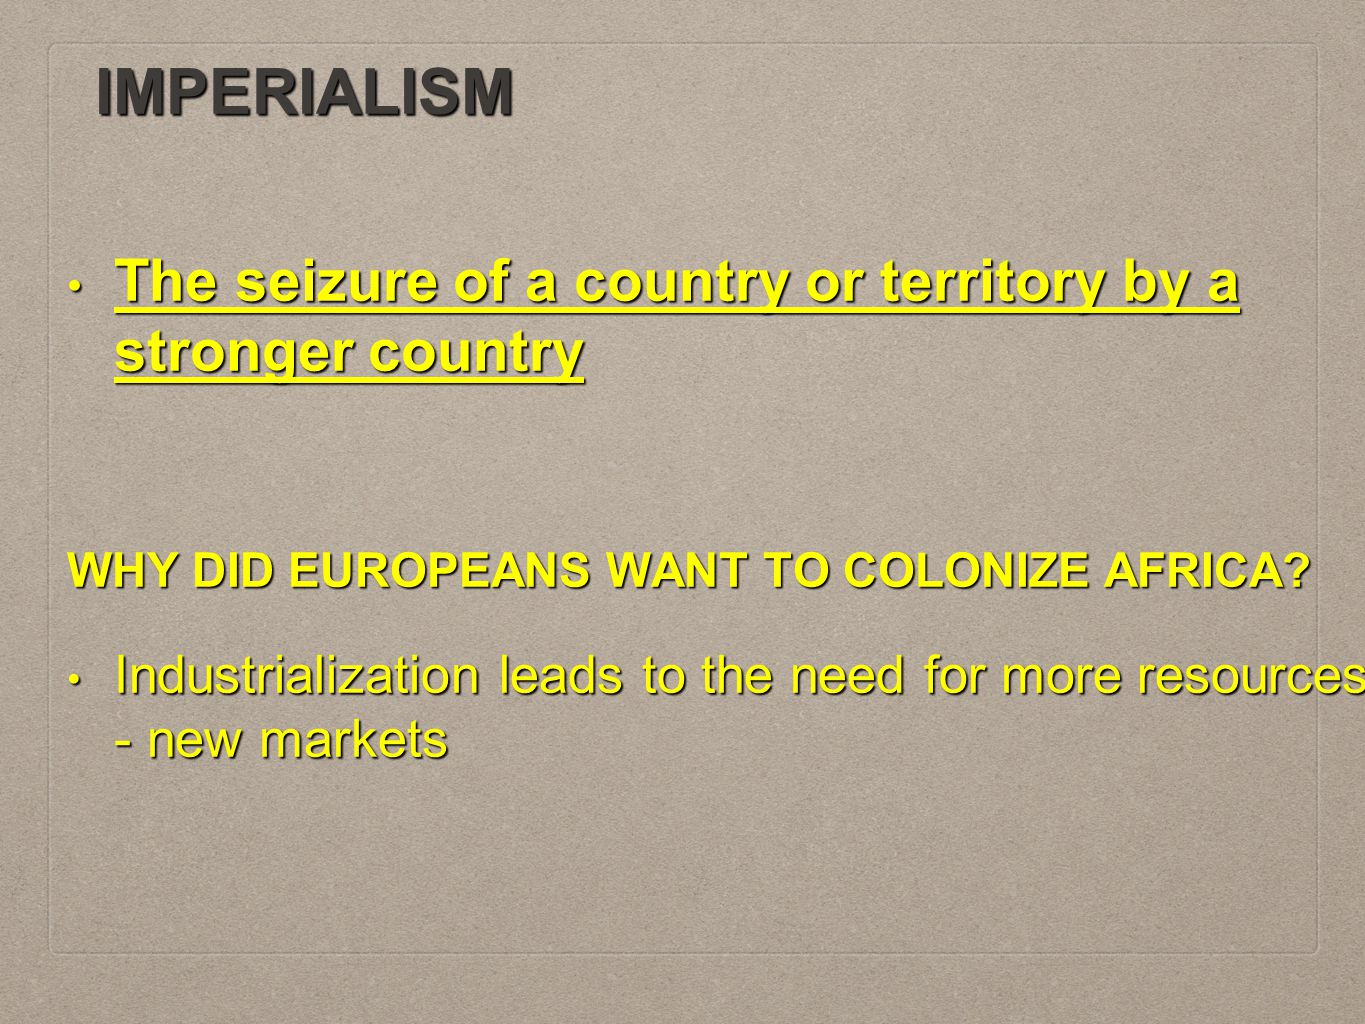 IMPERIALISM The seizure of a country or territory by a stronger country. WHY DID EUROPEANS WANT TO COLONIZE AFRICA